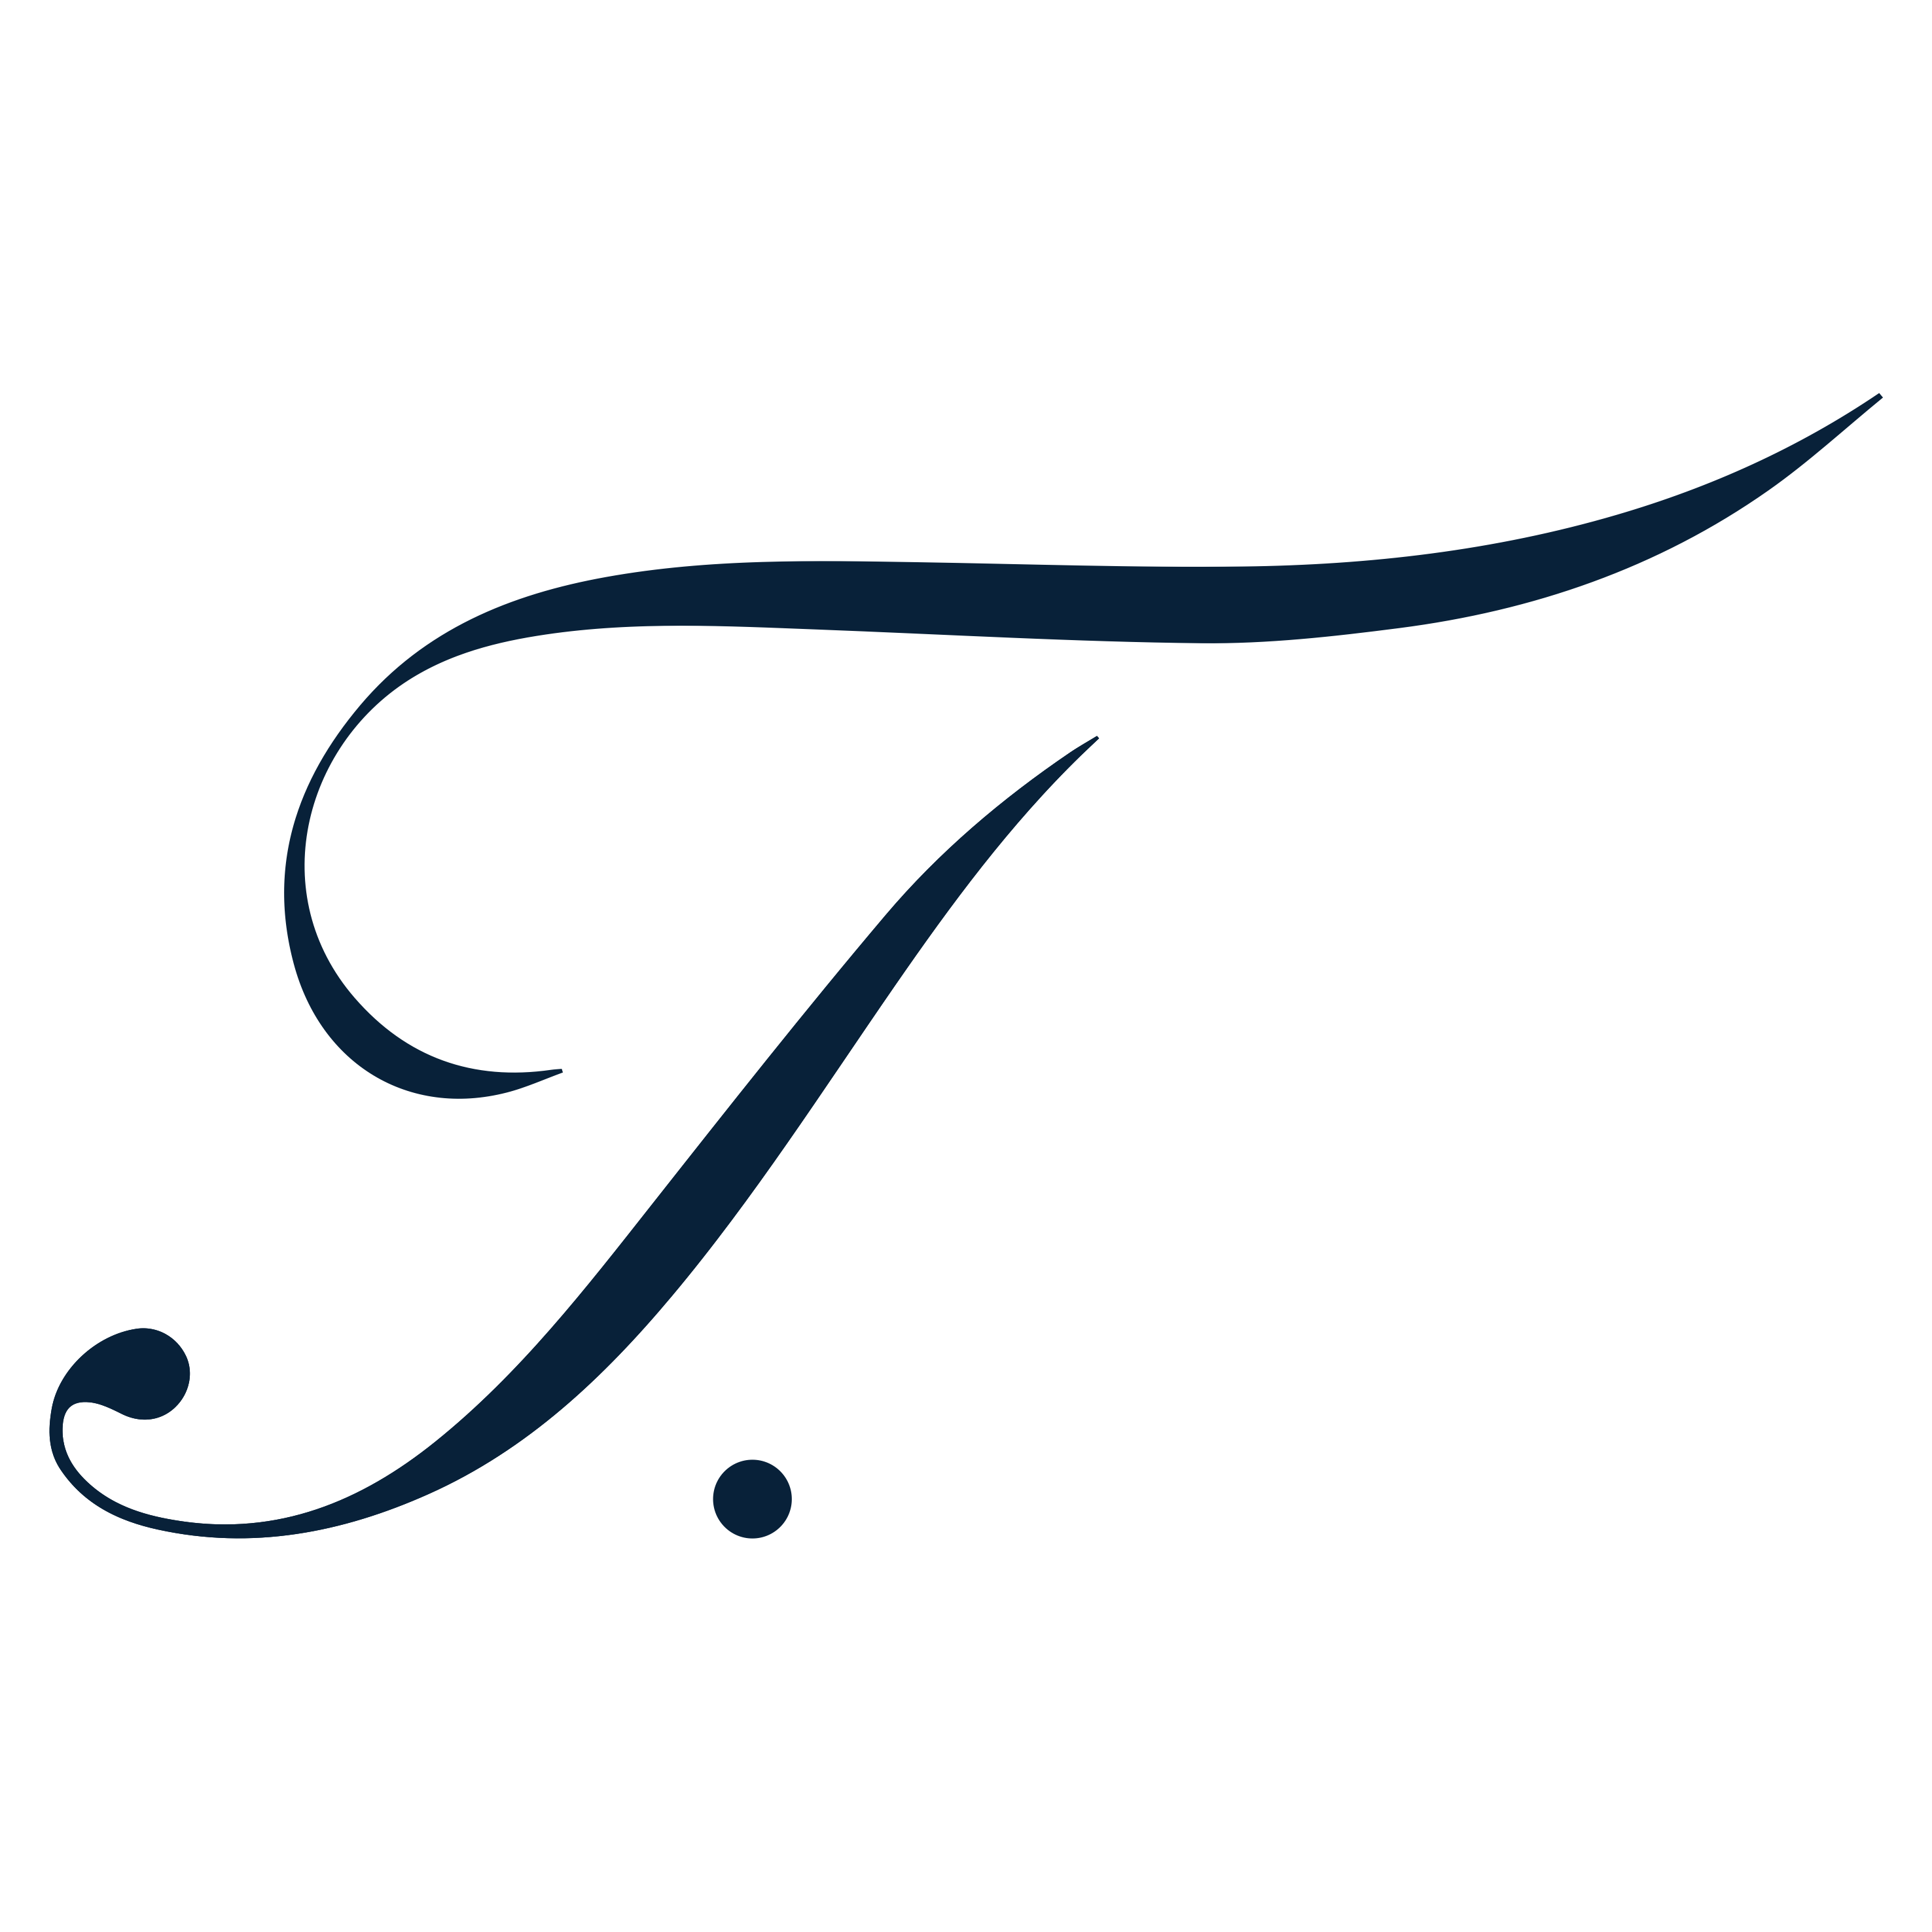 File:T Logo THUILLIER HD.png.